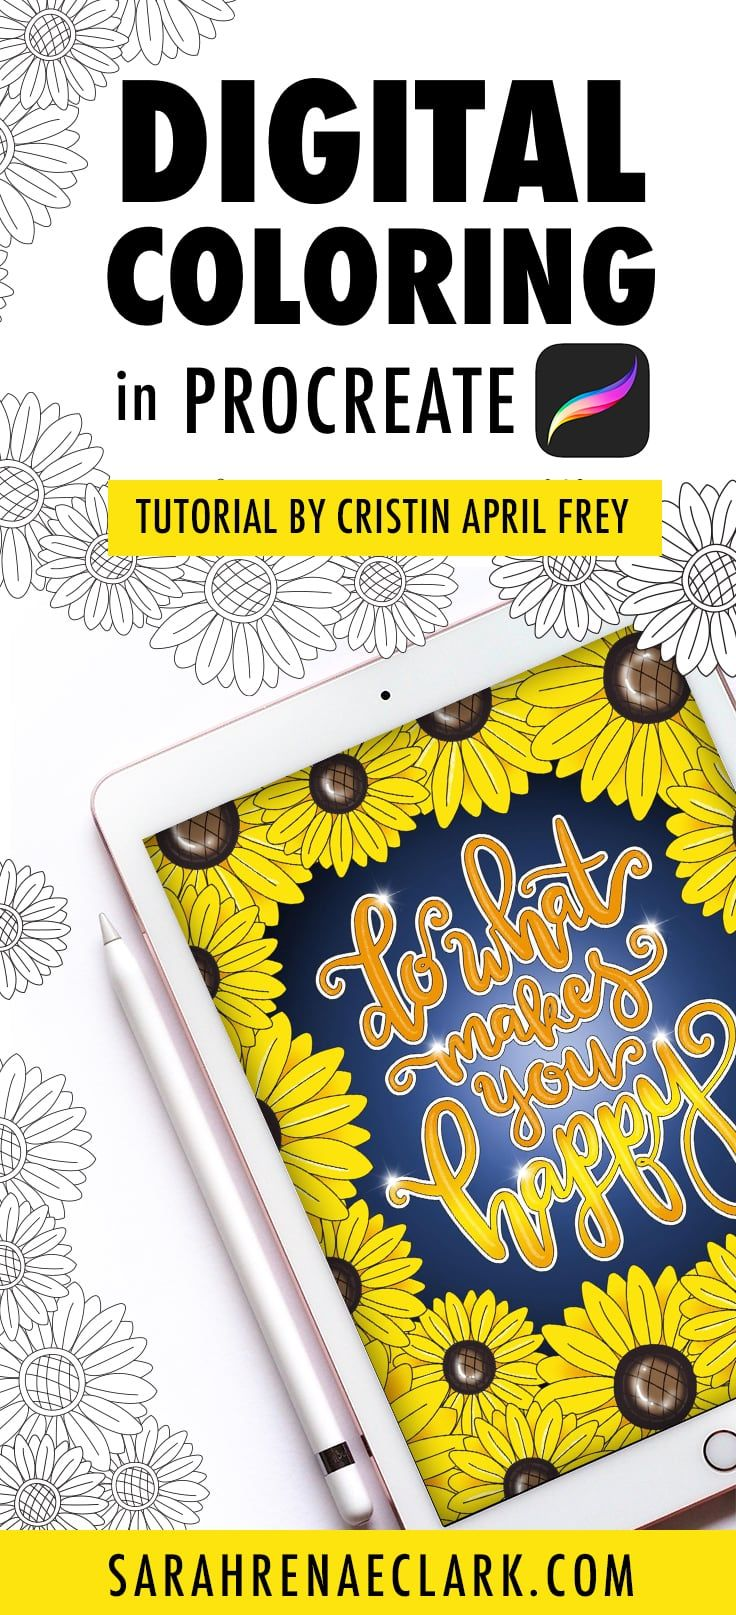 Digital Coloring In The Procreate App Adult Coloring Tutorial With Images Coloring Tutorial Procreate Tutorial Procreate App Tutorial